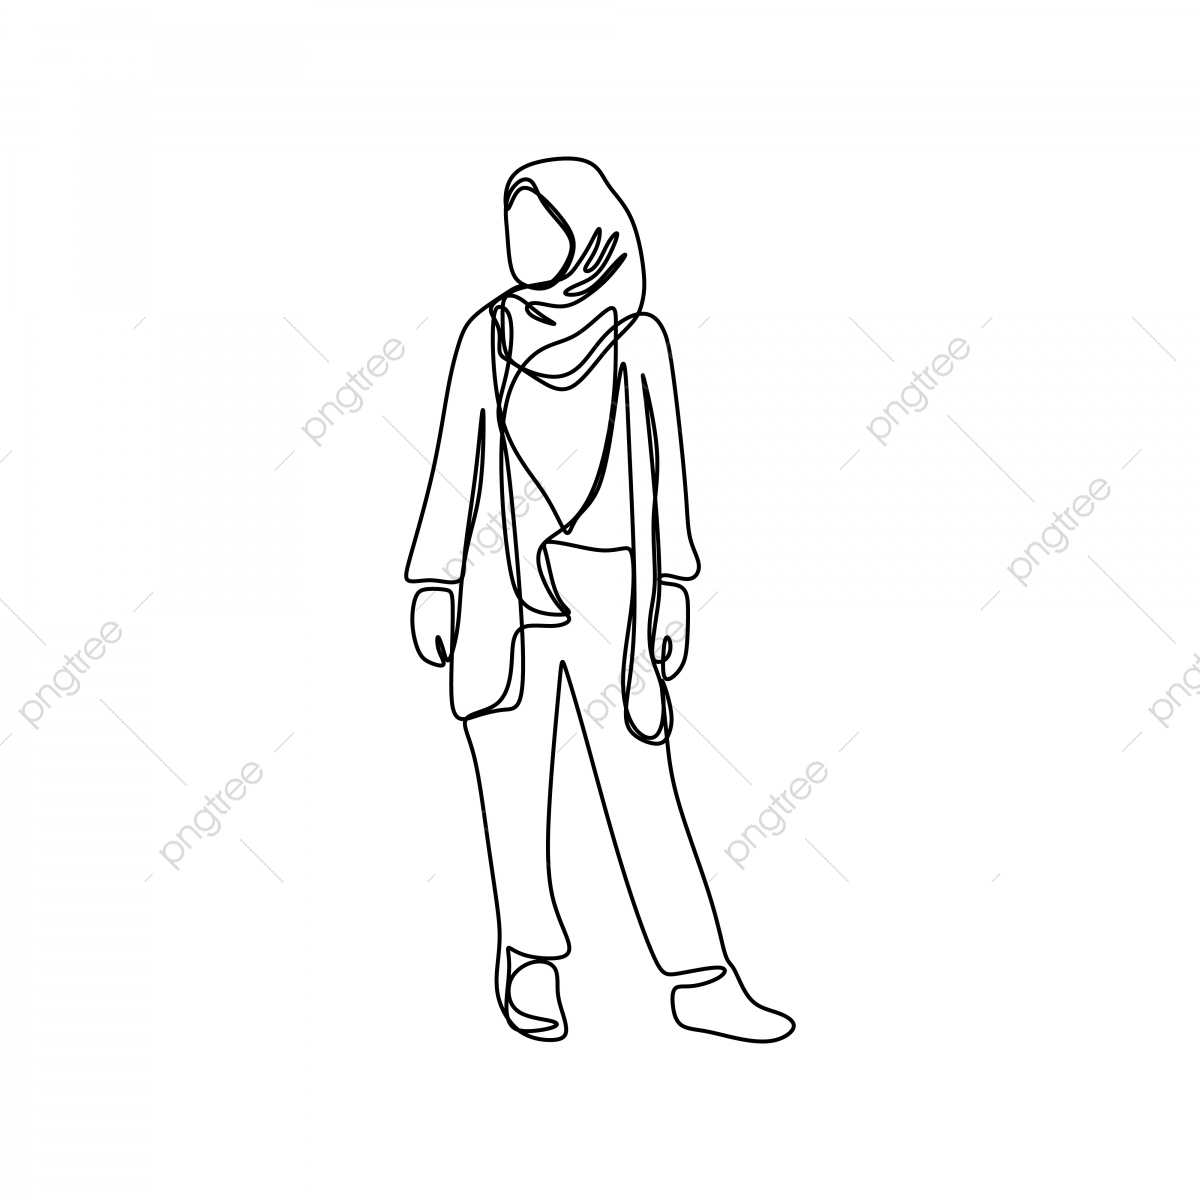 Trendy hijab girl wearing modern fashion with one continuous